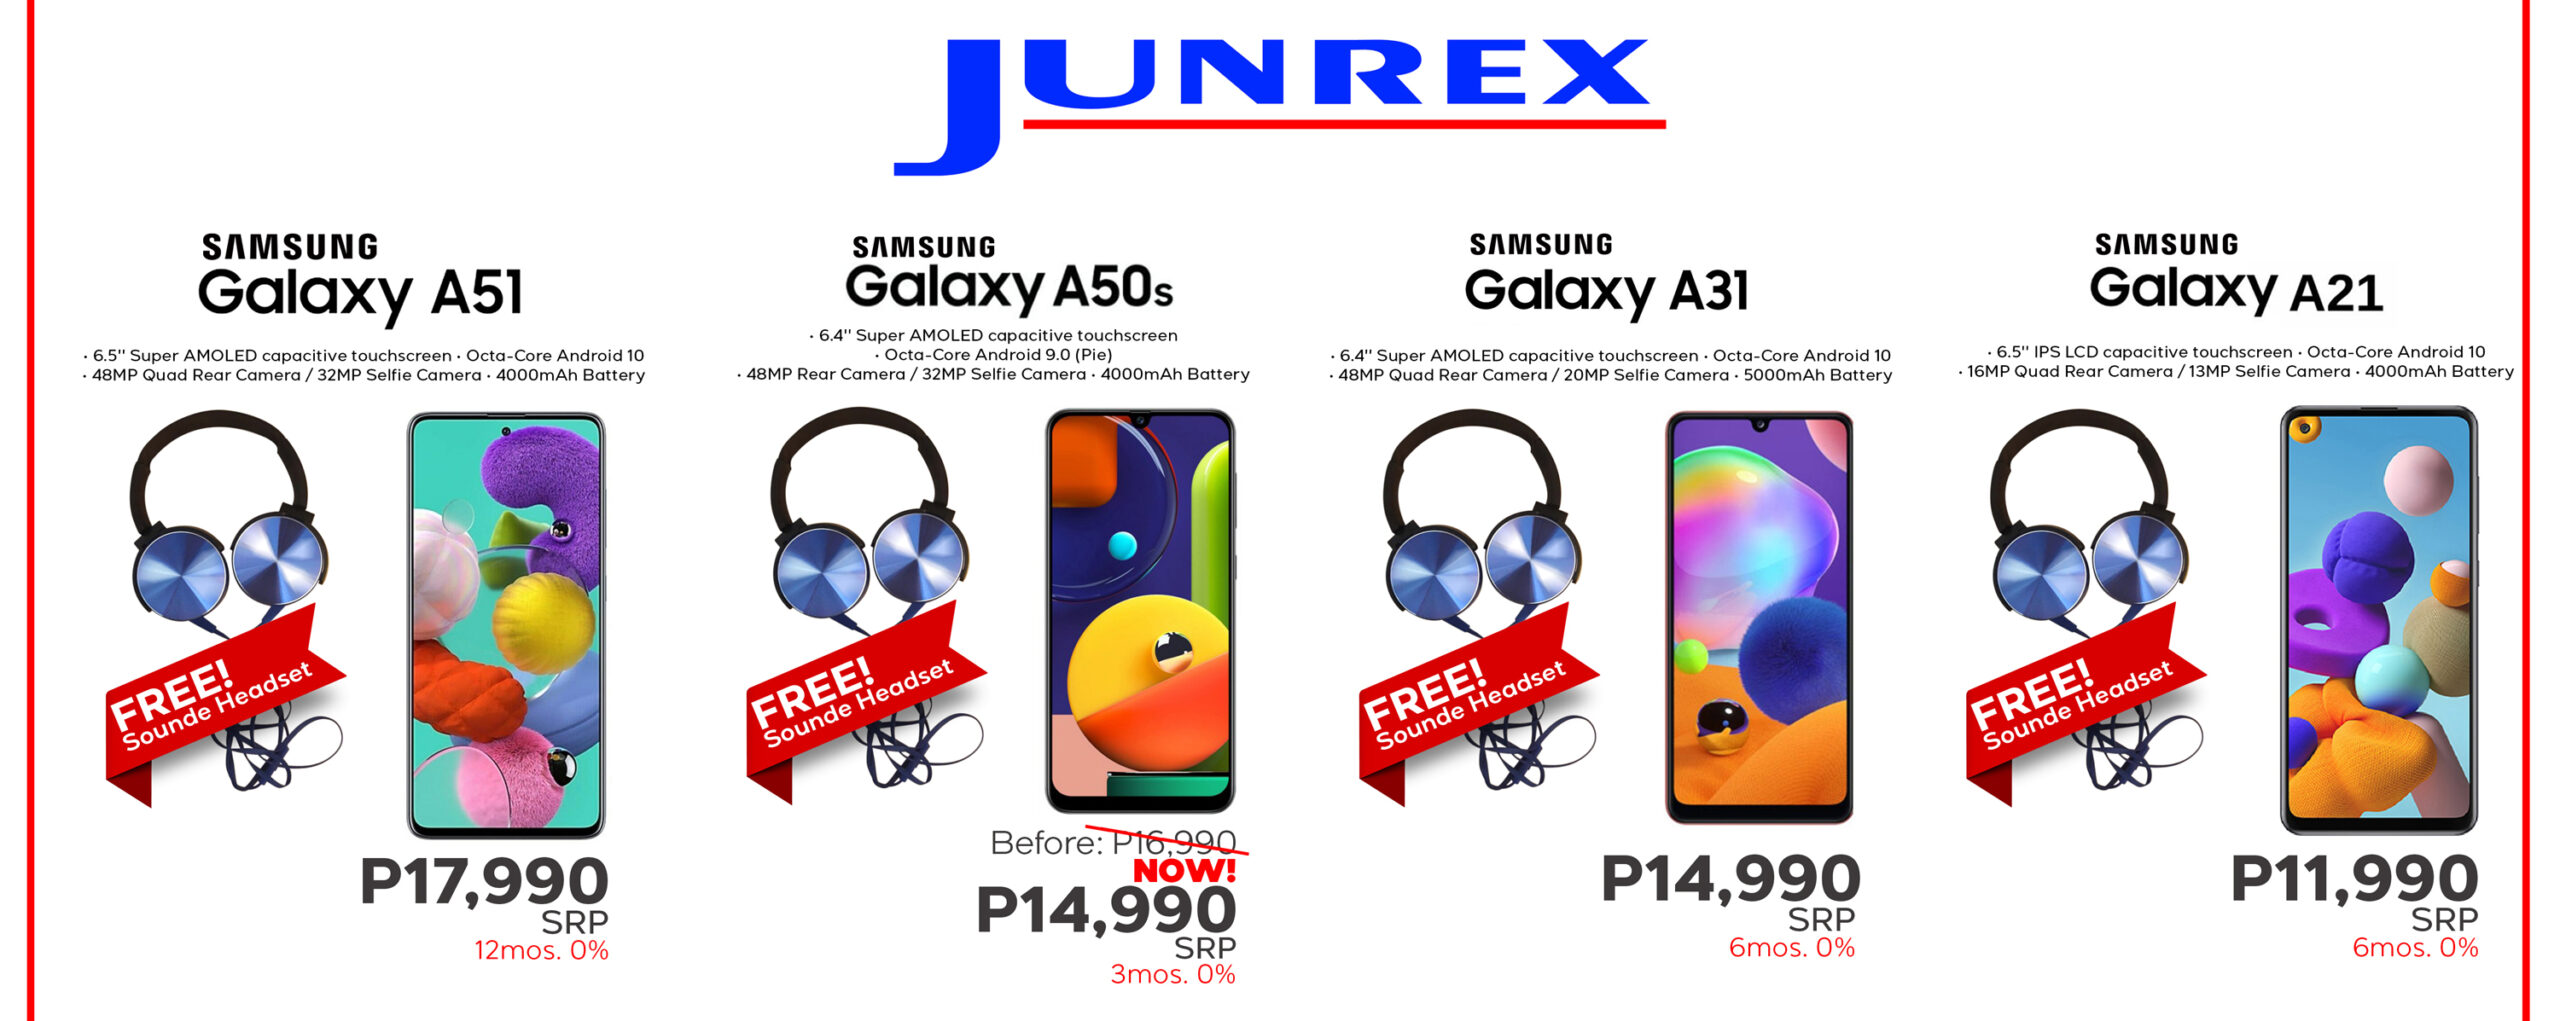 Junrex offers free items for purchases of gadgets